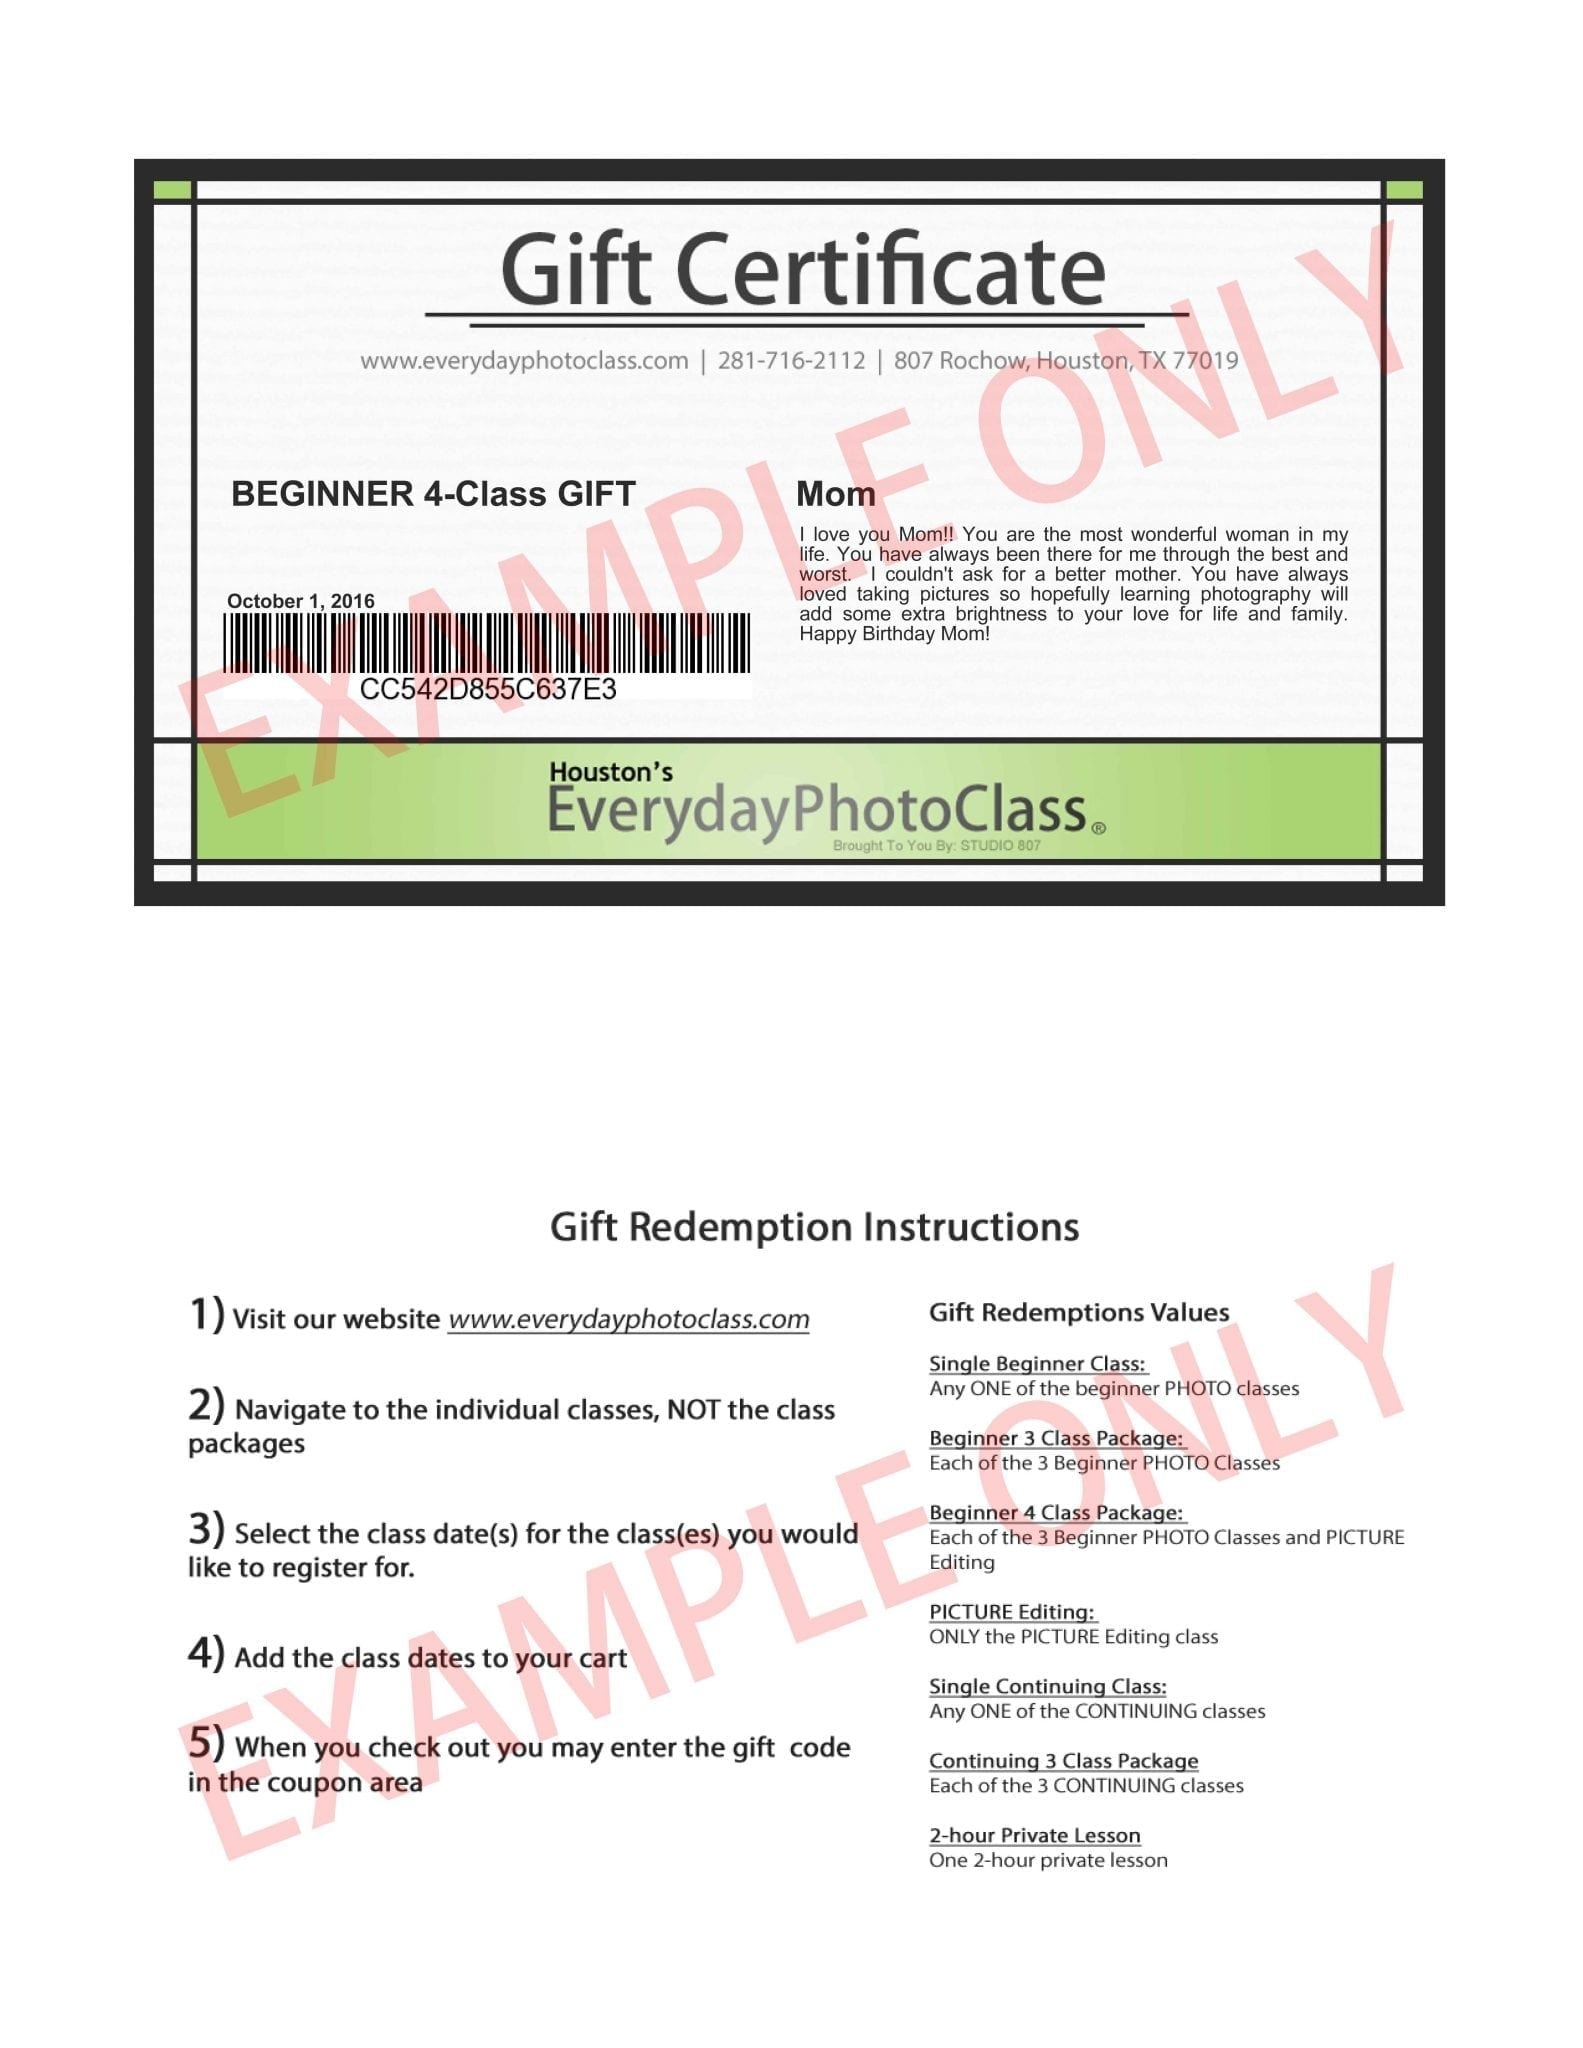 houston photography classes gift certificates everydayphotoclass gift certificate example